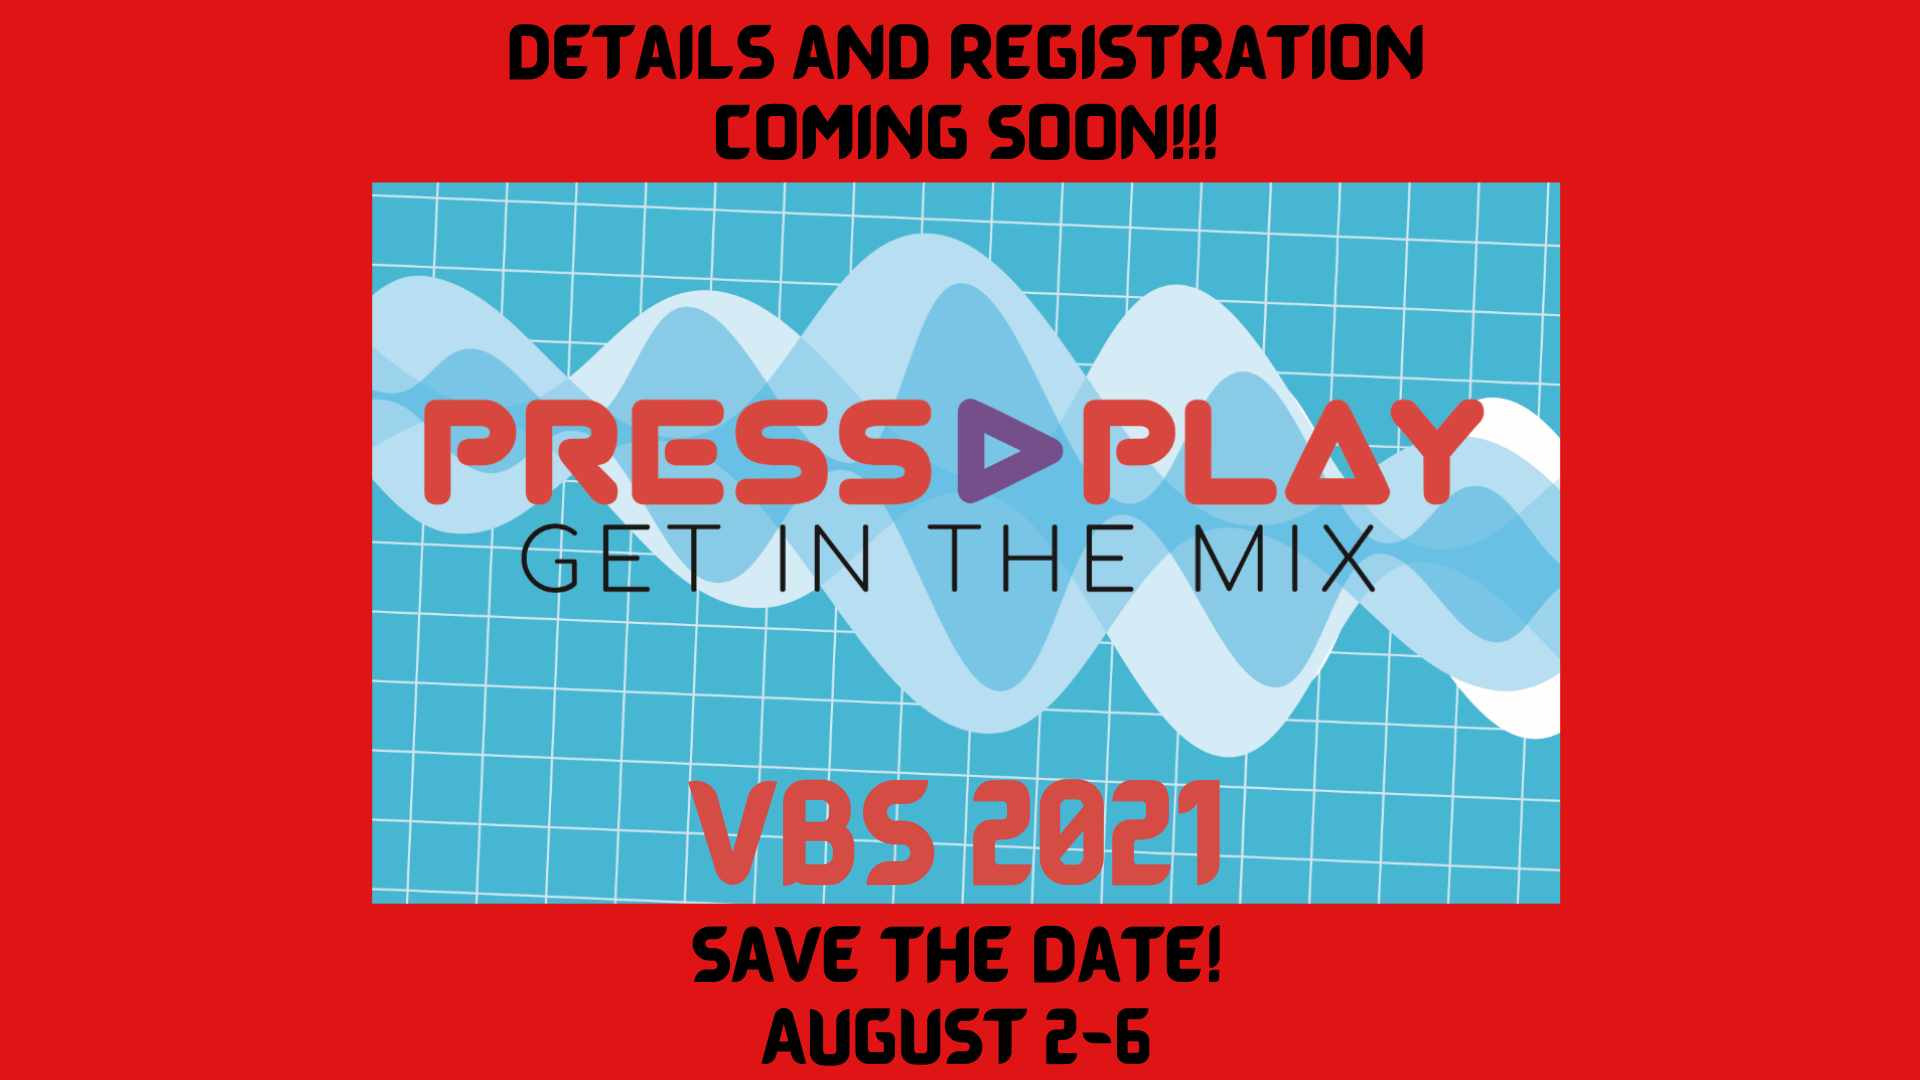 In-Person VBS 2021!